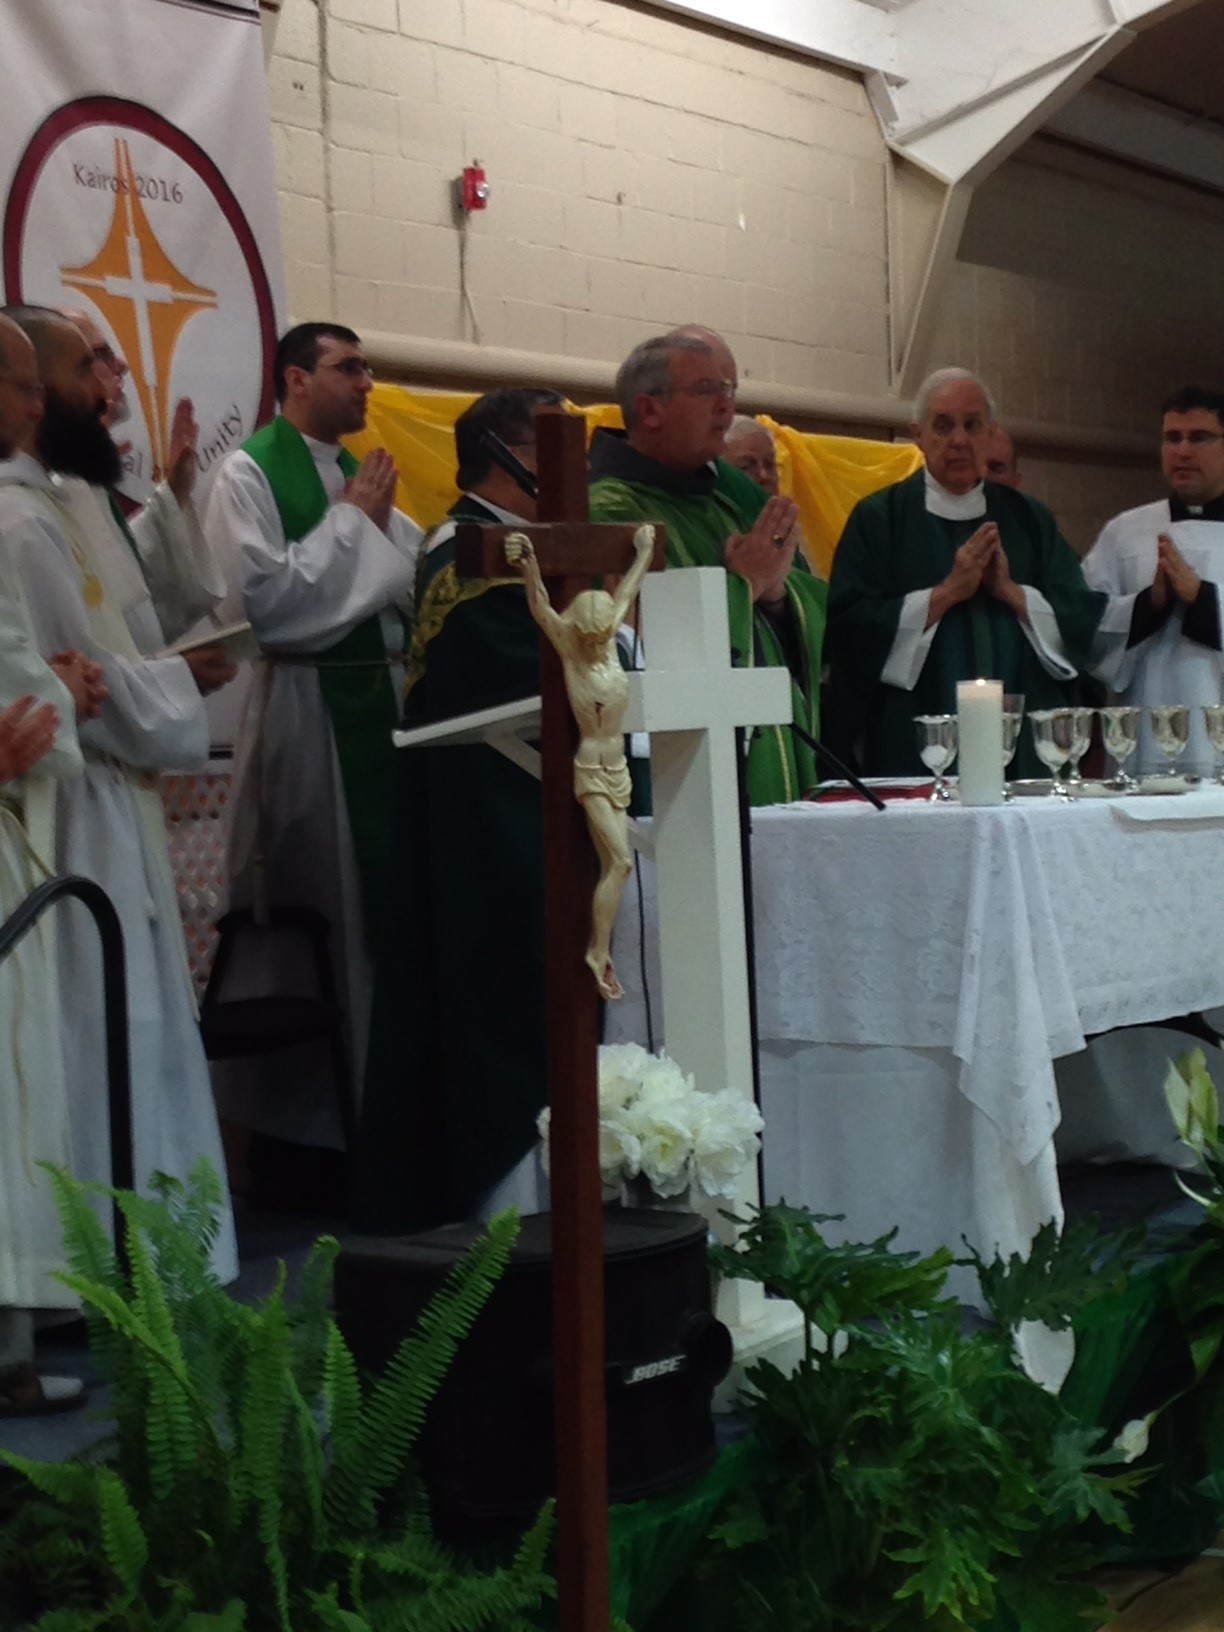 Priests praying during Mass